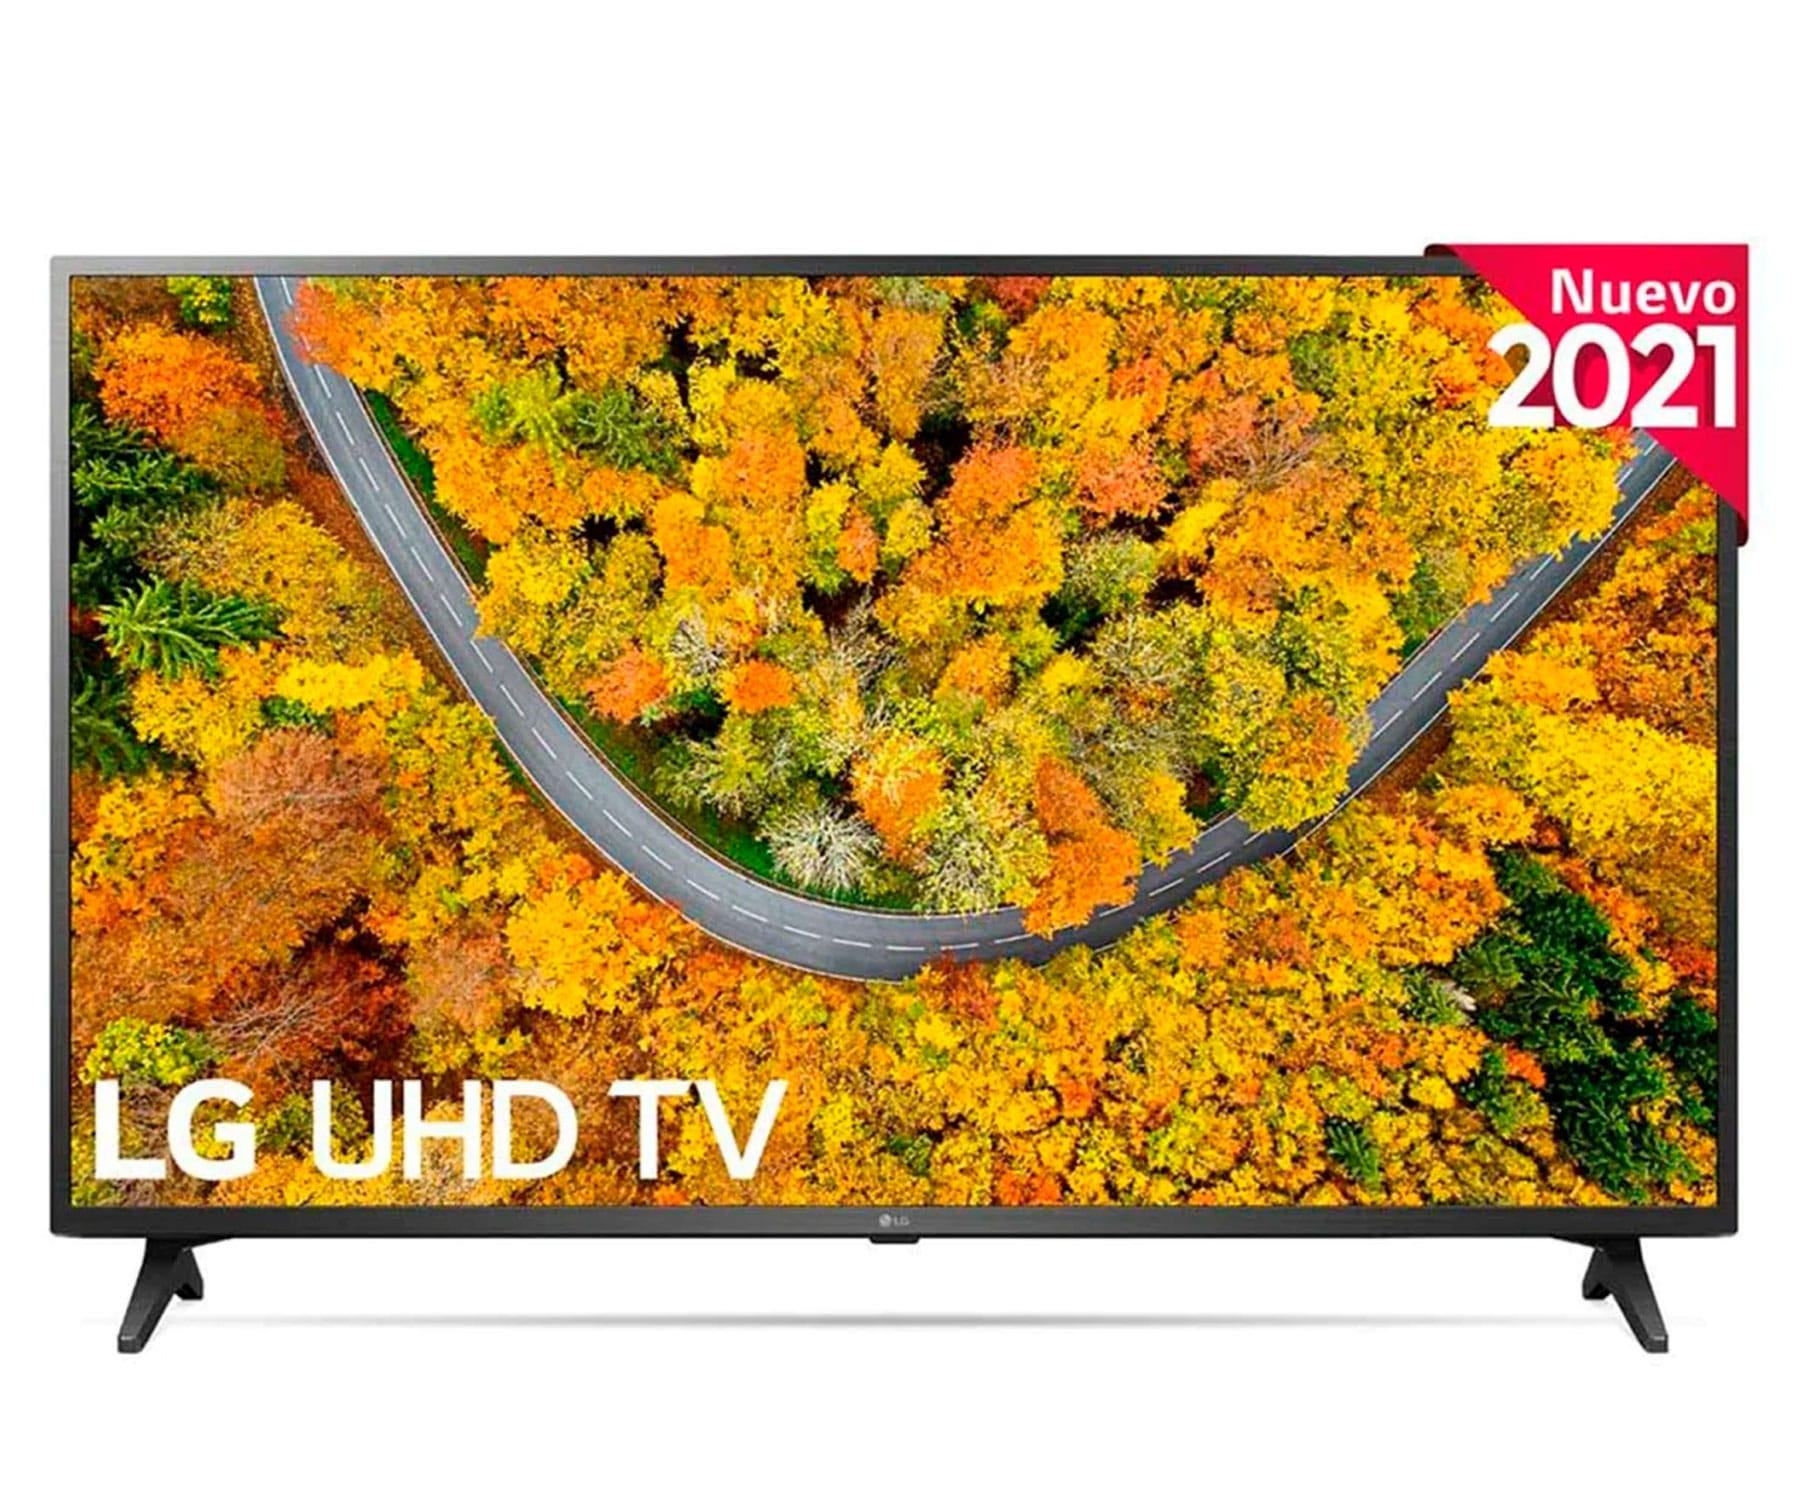 LG 55UP75006LF TELEVISOR 55'' LED UHD 4K SMART TV WEBOS 6.0 4K QUAD CORE WIFI HDMI BLUETOOTH